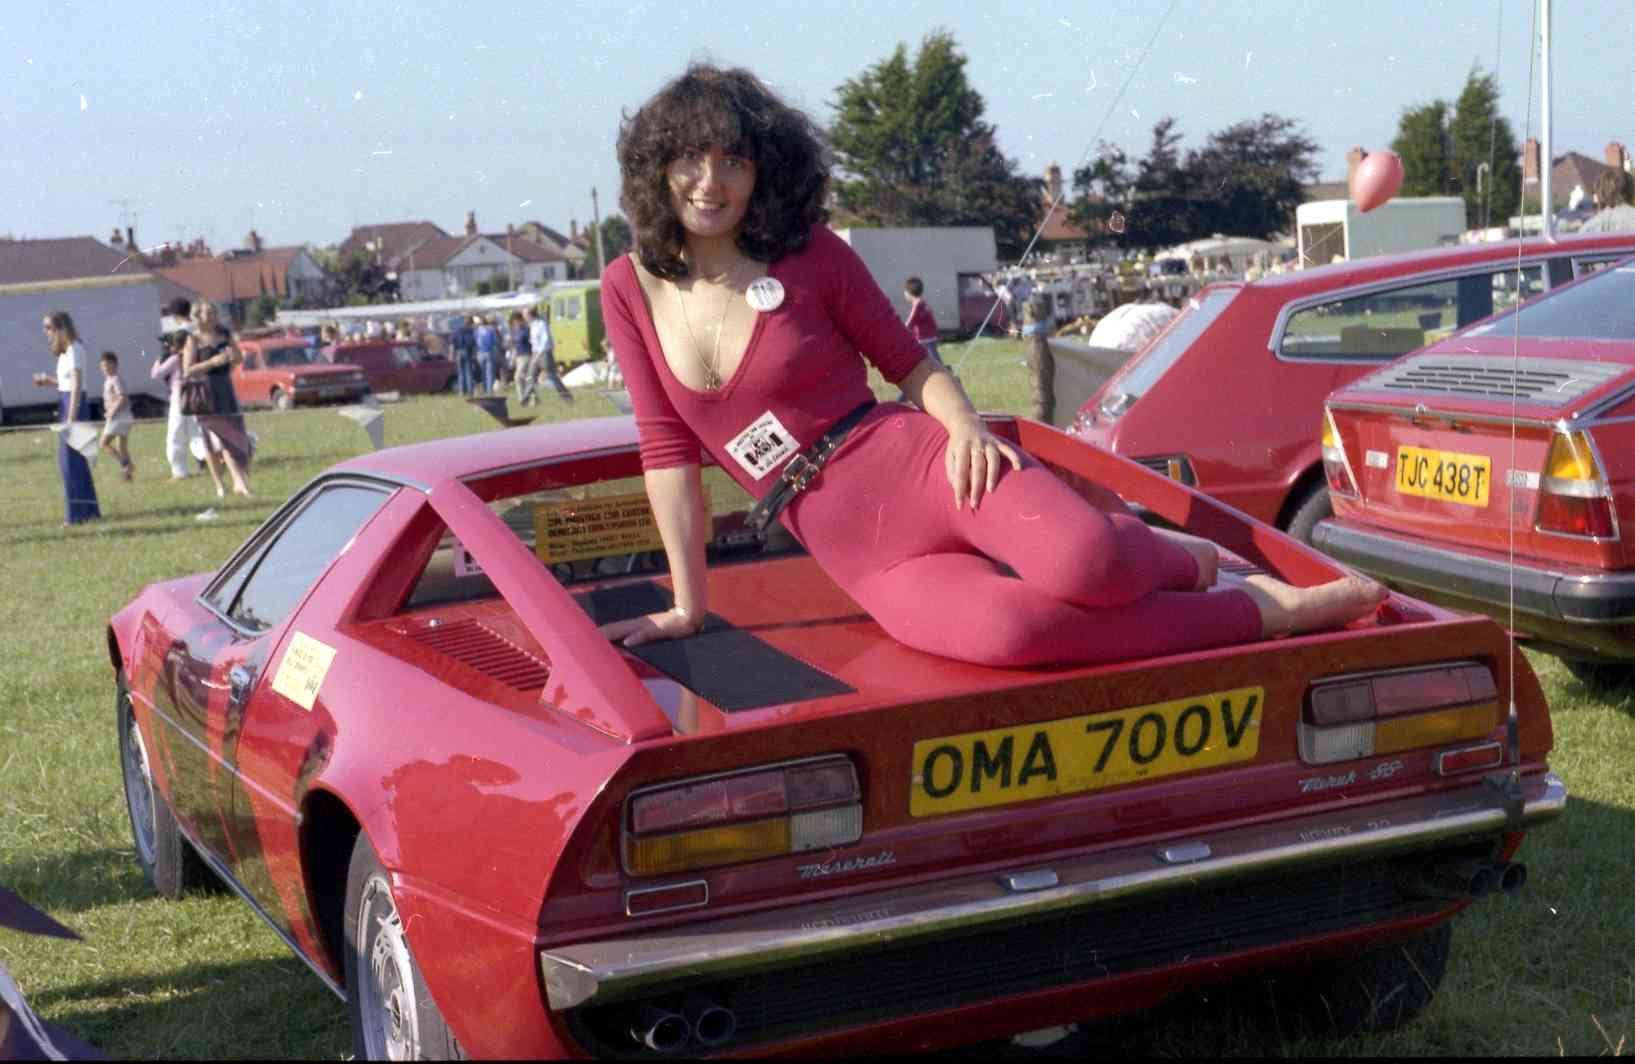 Maserati & Lancia show ground promotion North Wales